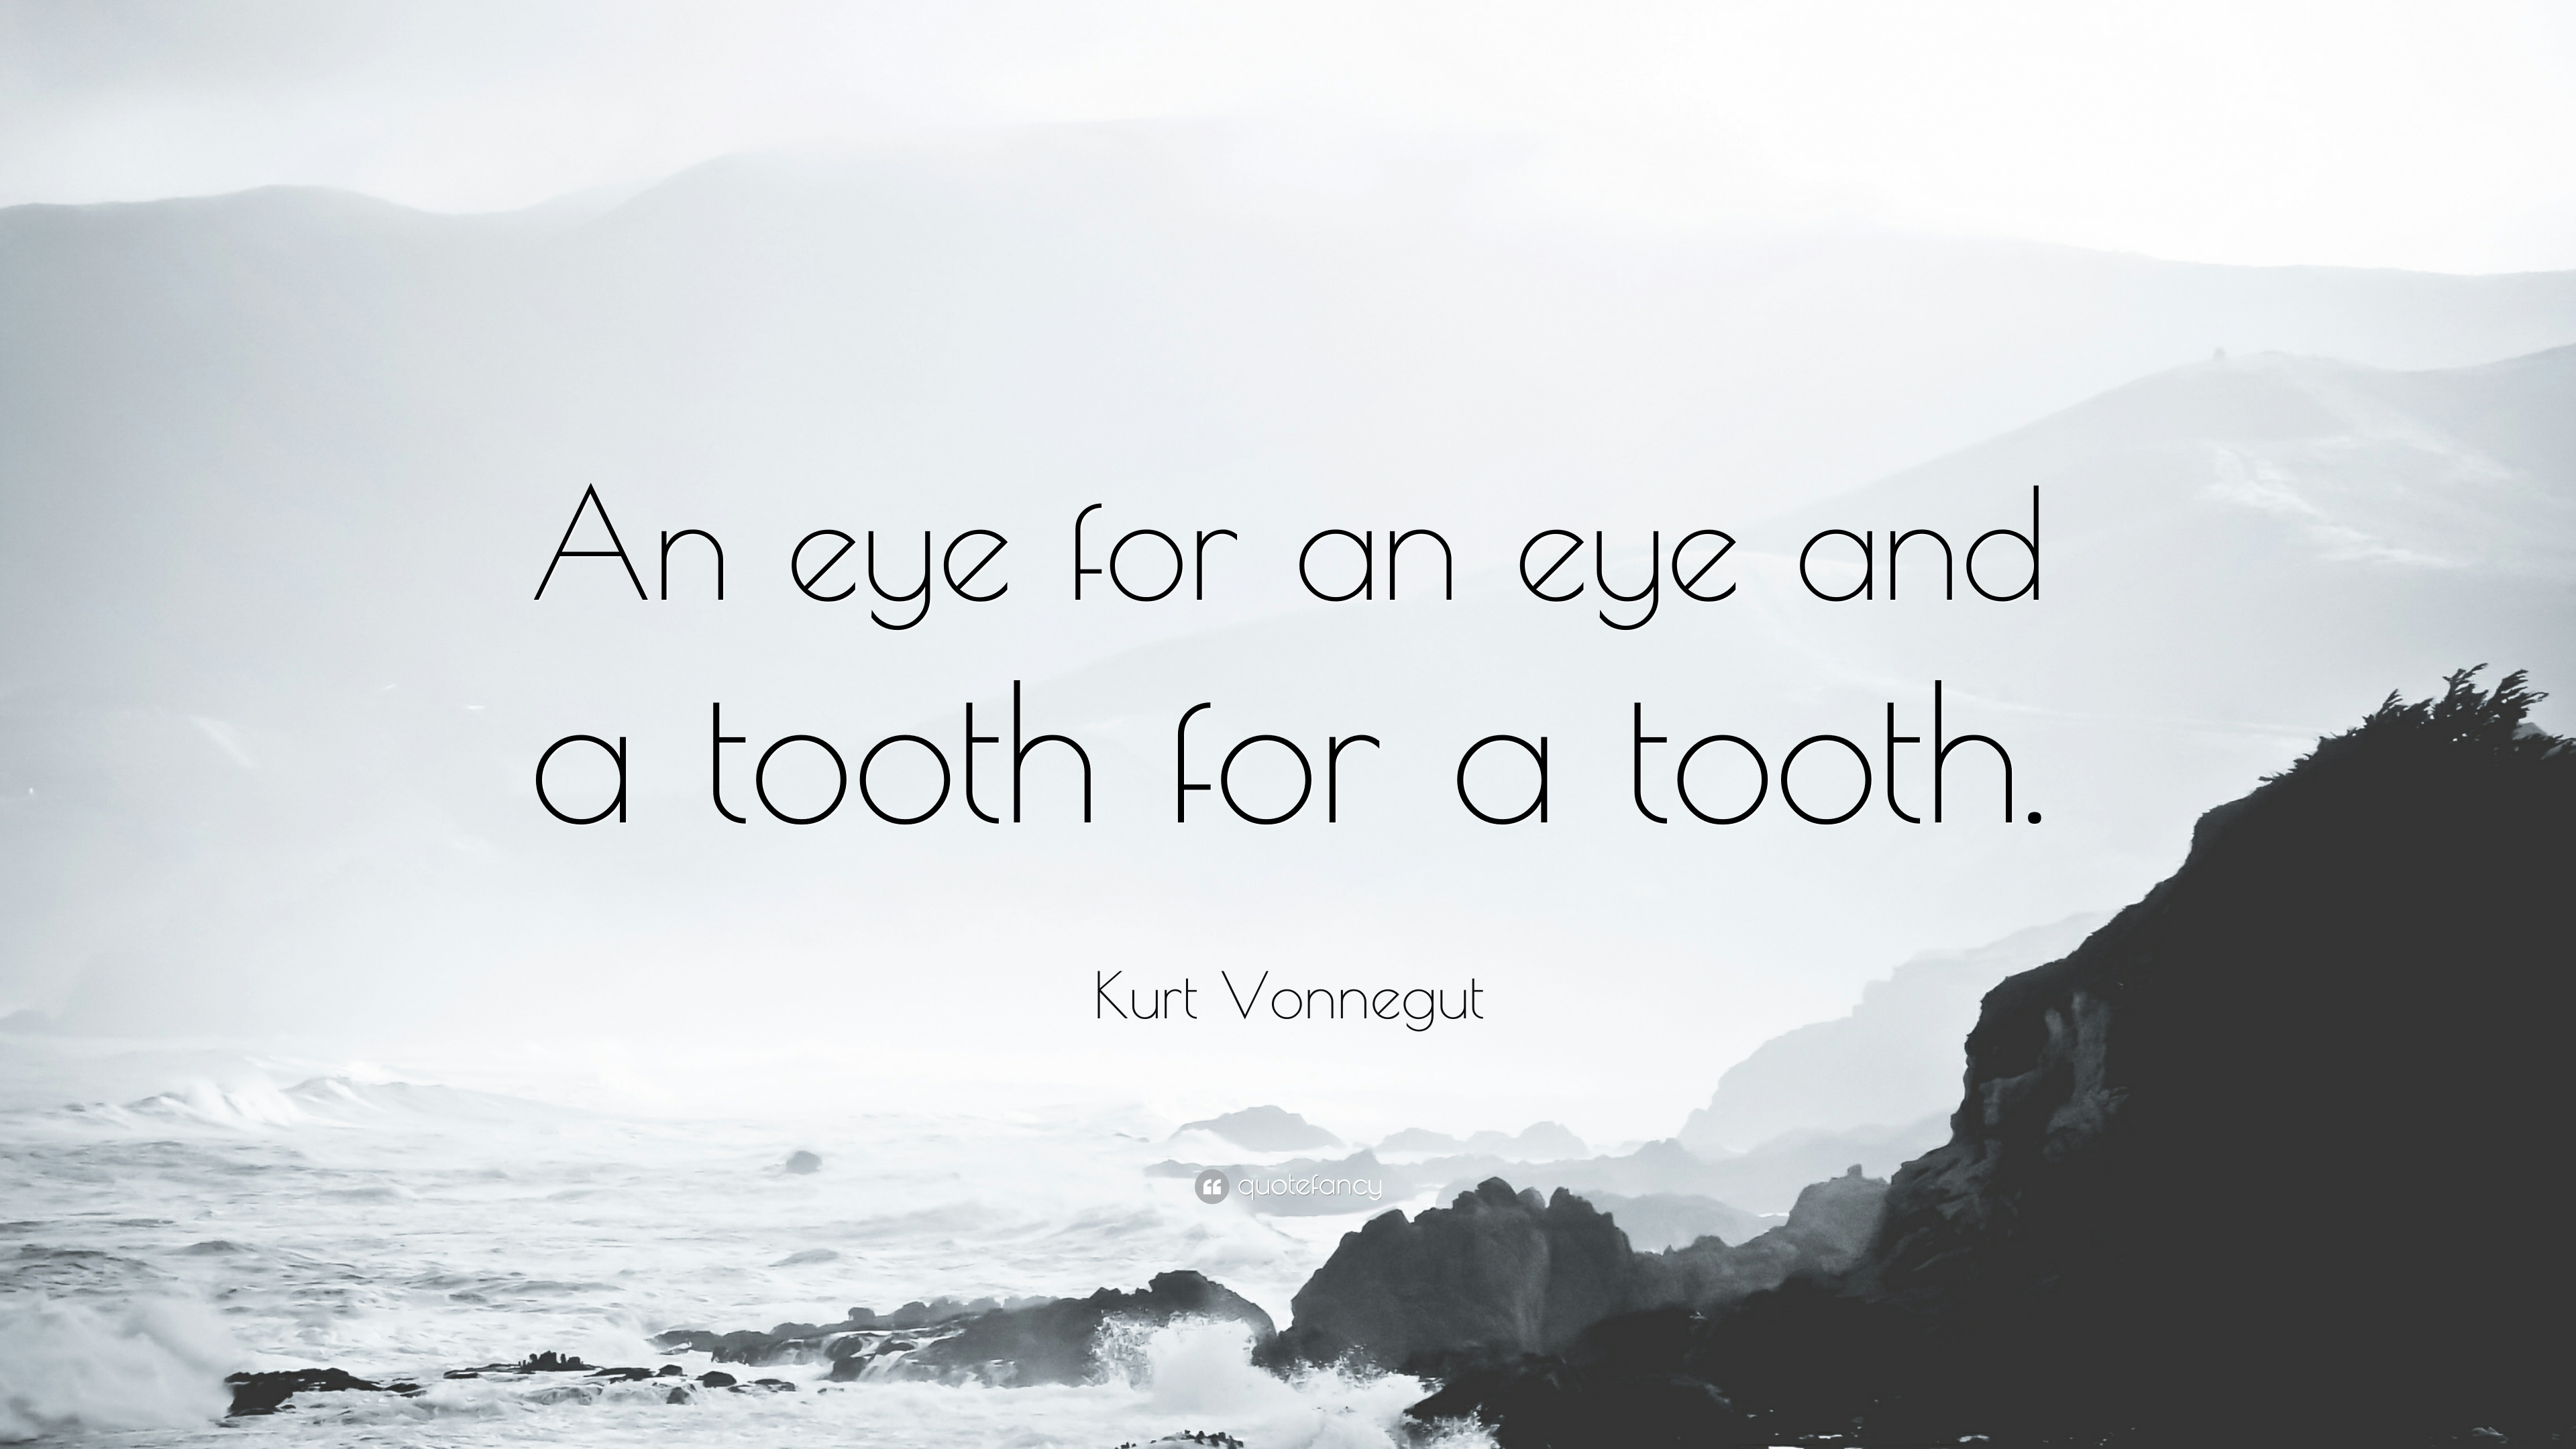 Kurt Vonnegut Quote An Eye For An Eye And A Tooth For A